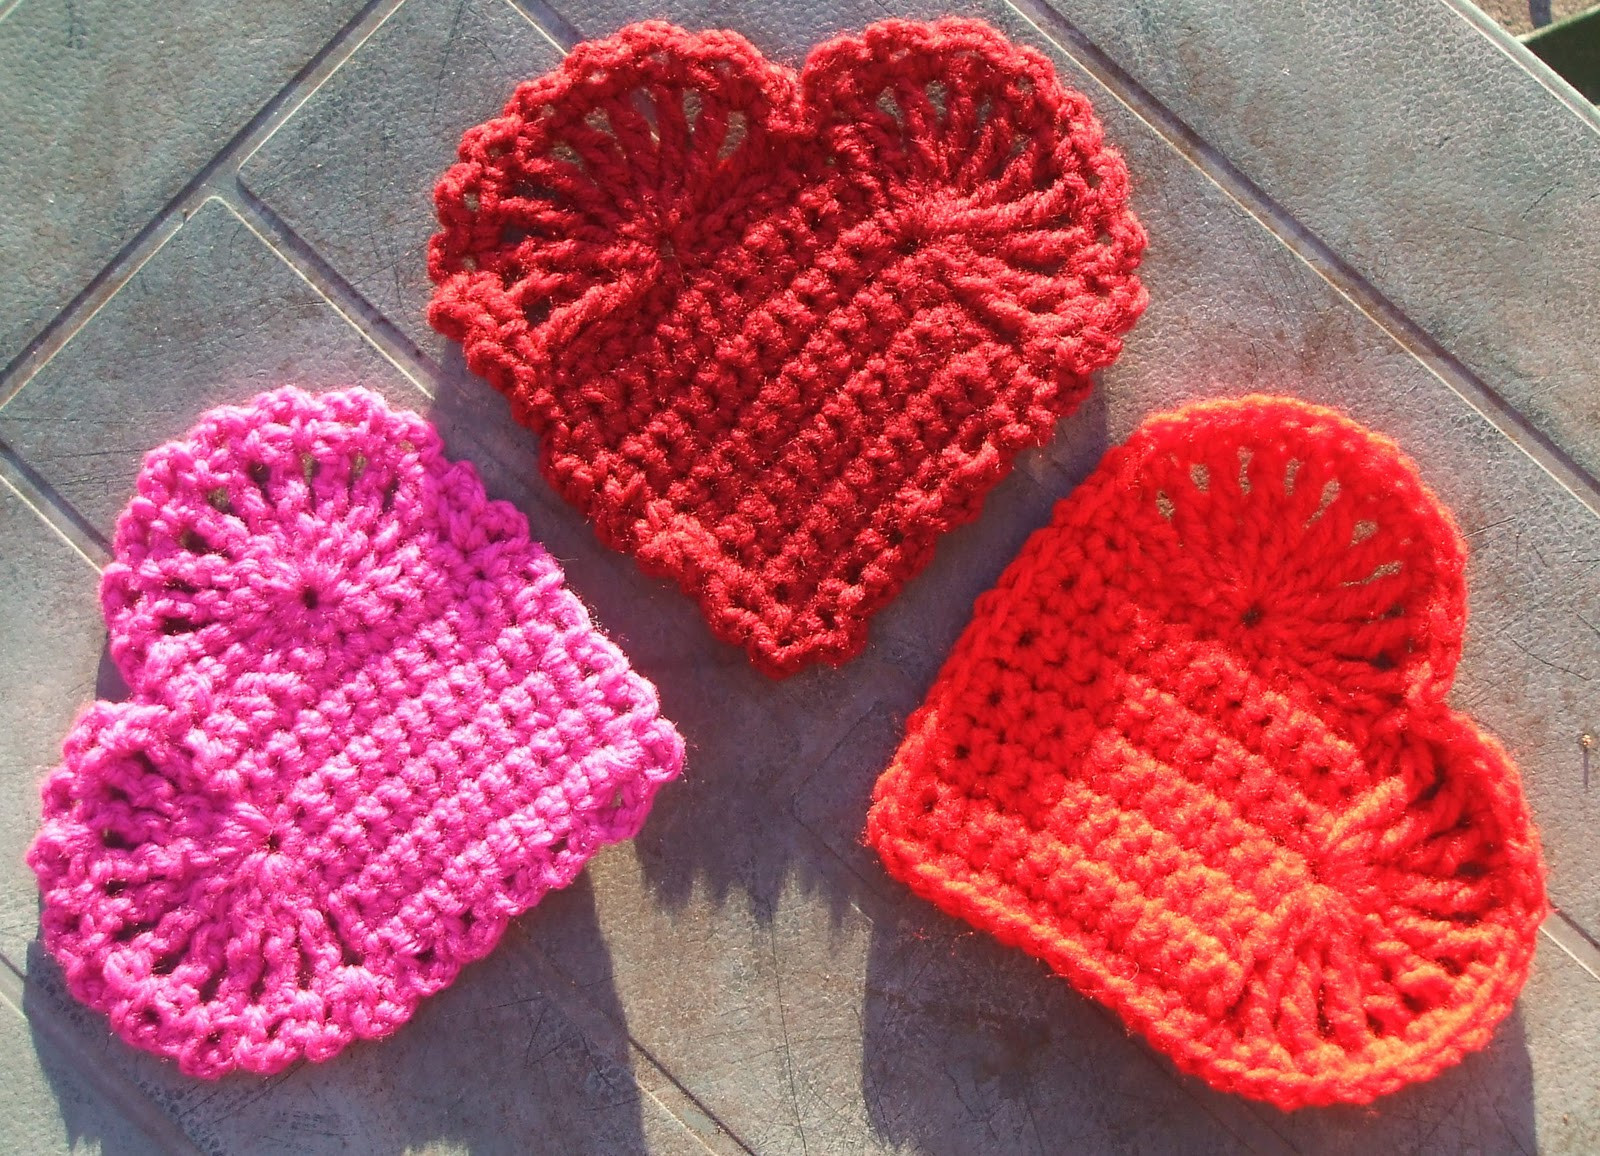 Red Heart Patterns Luxury Red Heart Free Crochet Patterns Of Contemporary 46 Ideas Red Heart Patterns